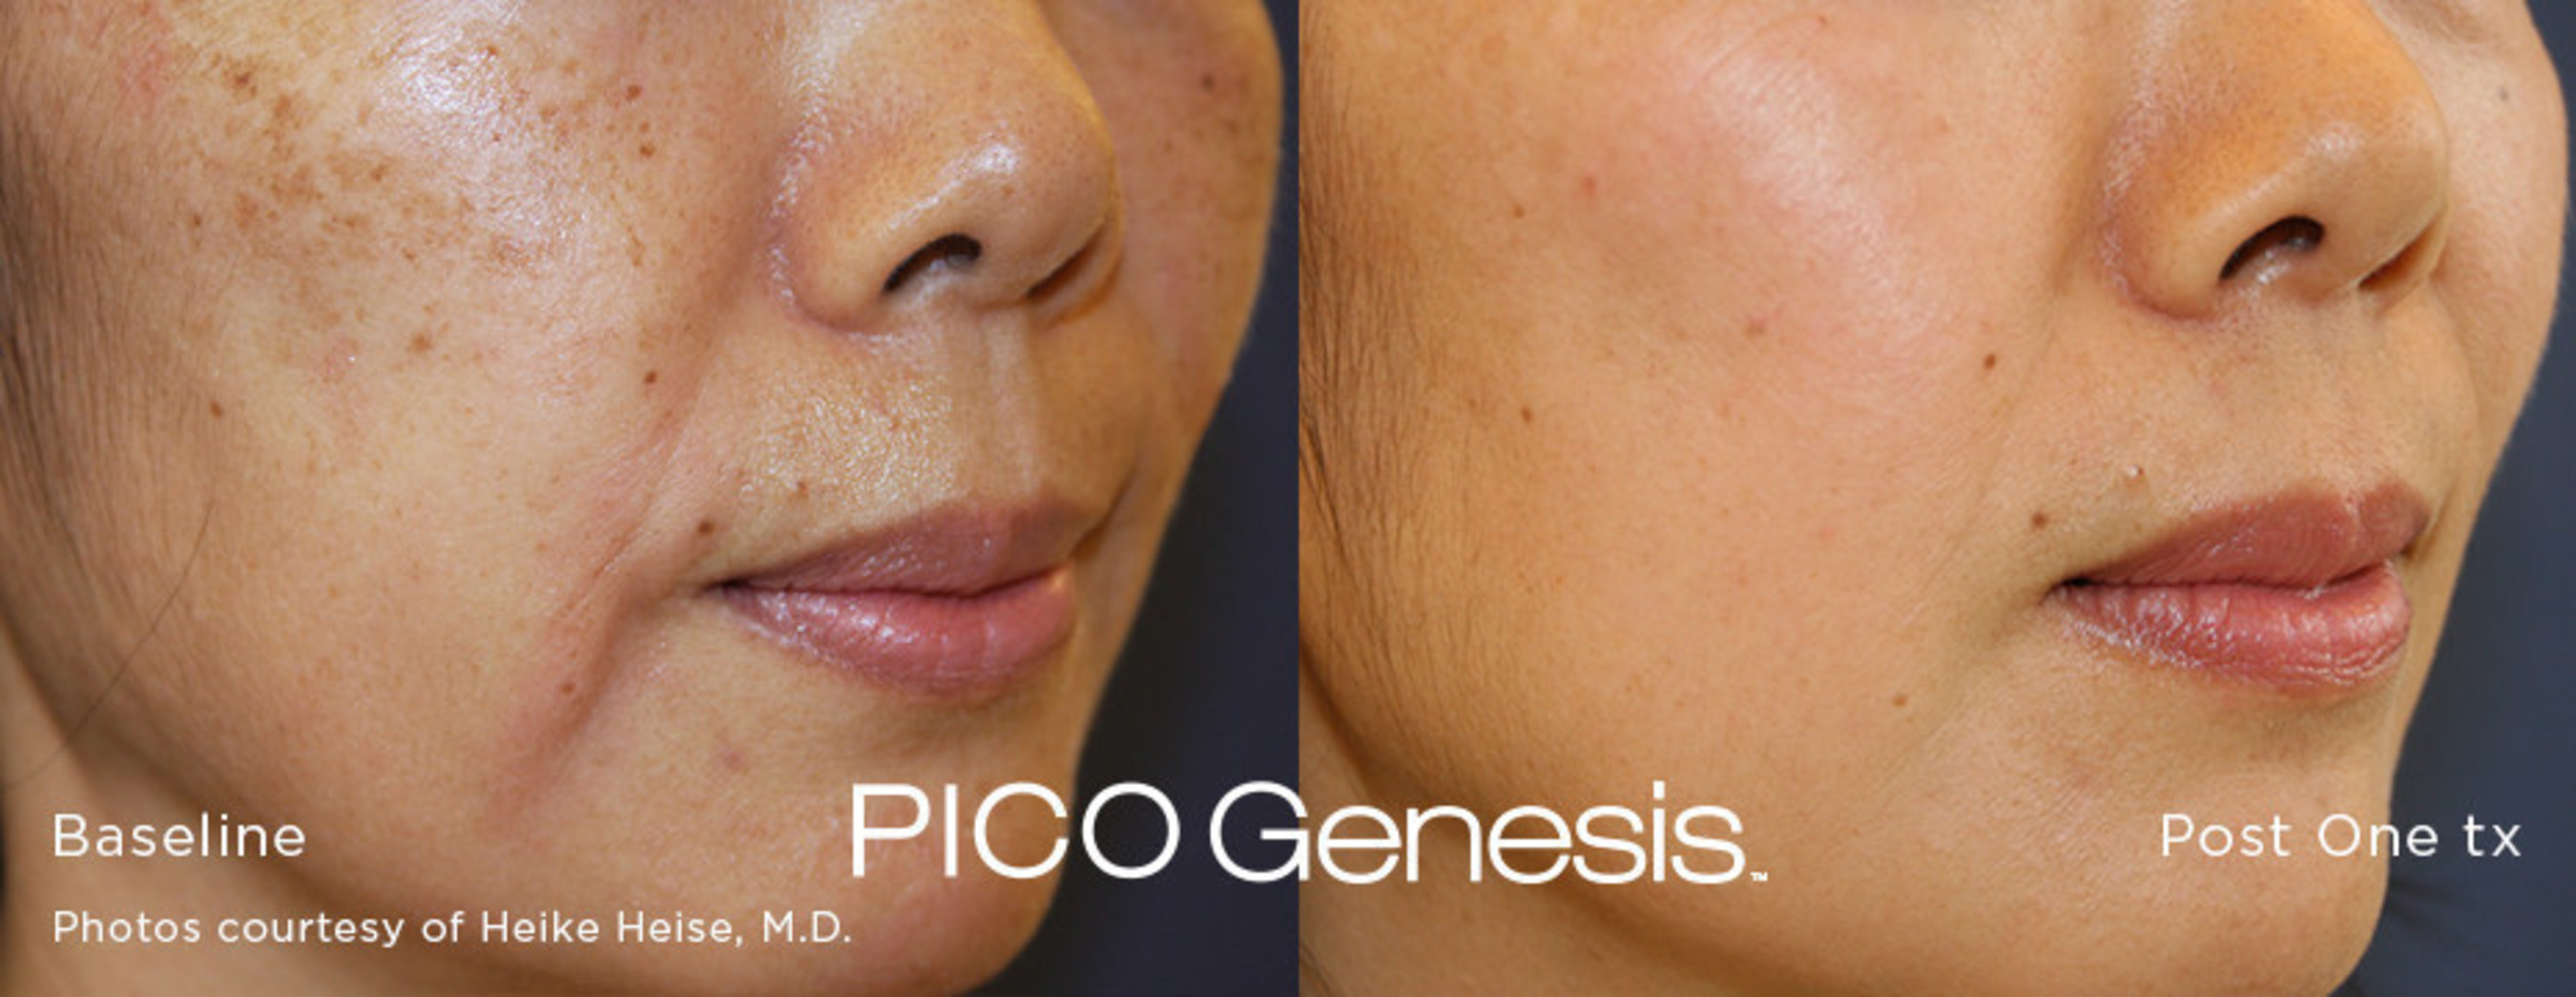 CUTERA Launches New PICO Genesis™ Treatment With enlighten™